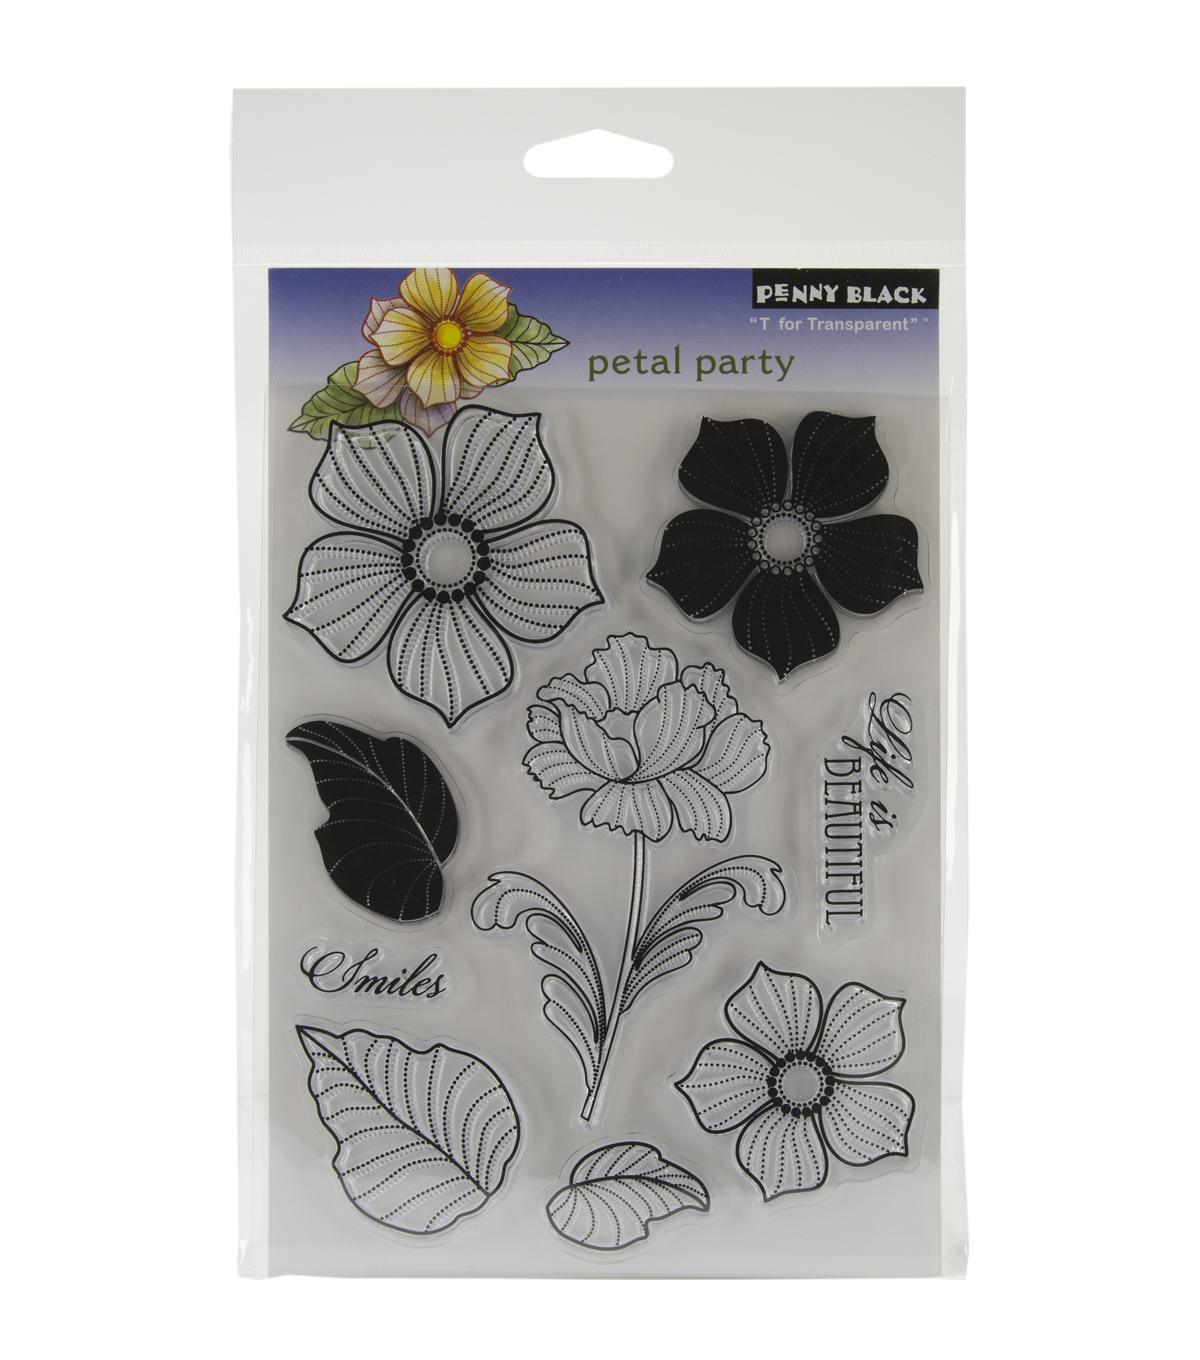 Penny Black Clear Stamps 5\u0022X7.5\u0022 Sheet-Petal Party